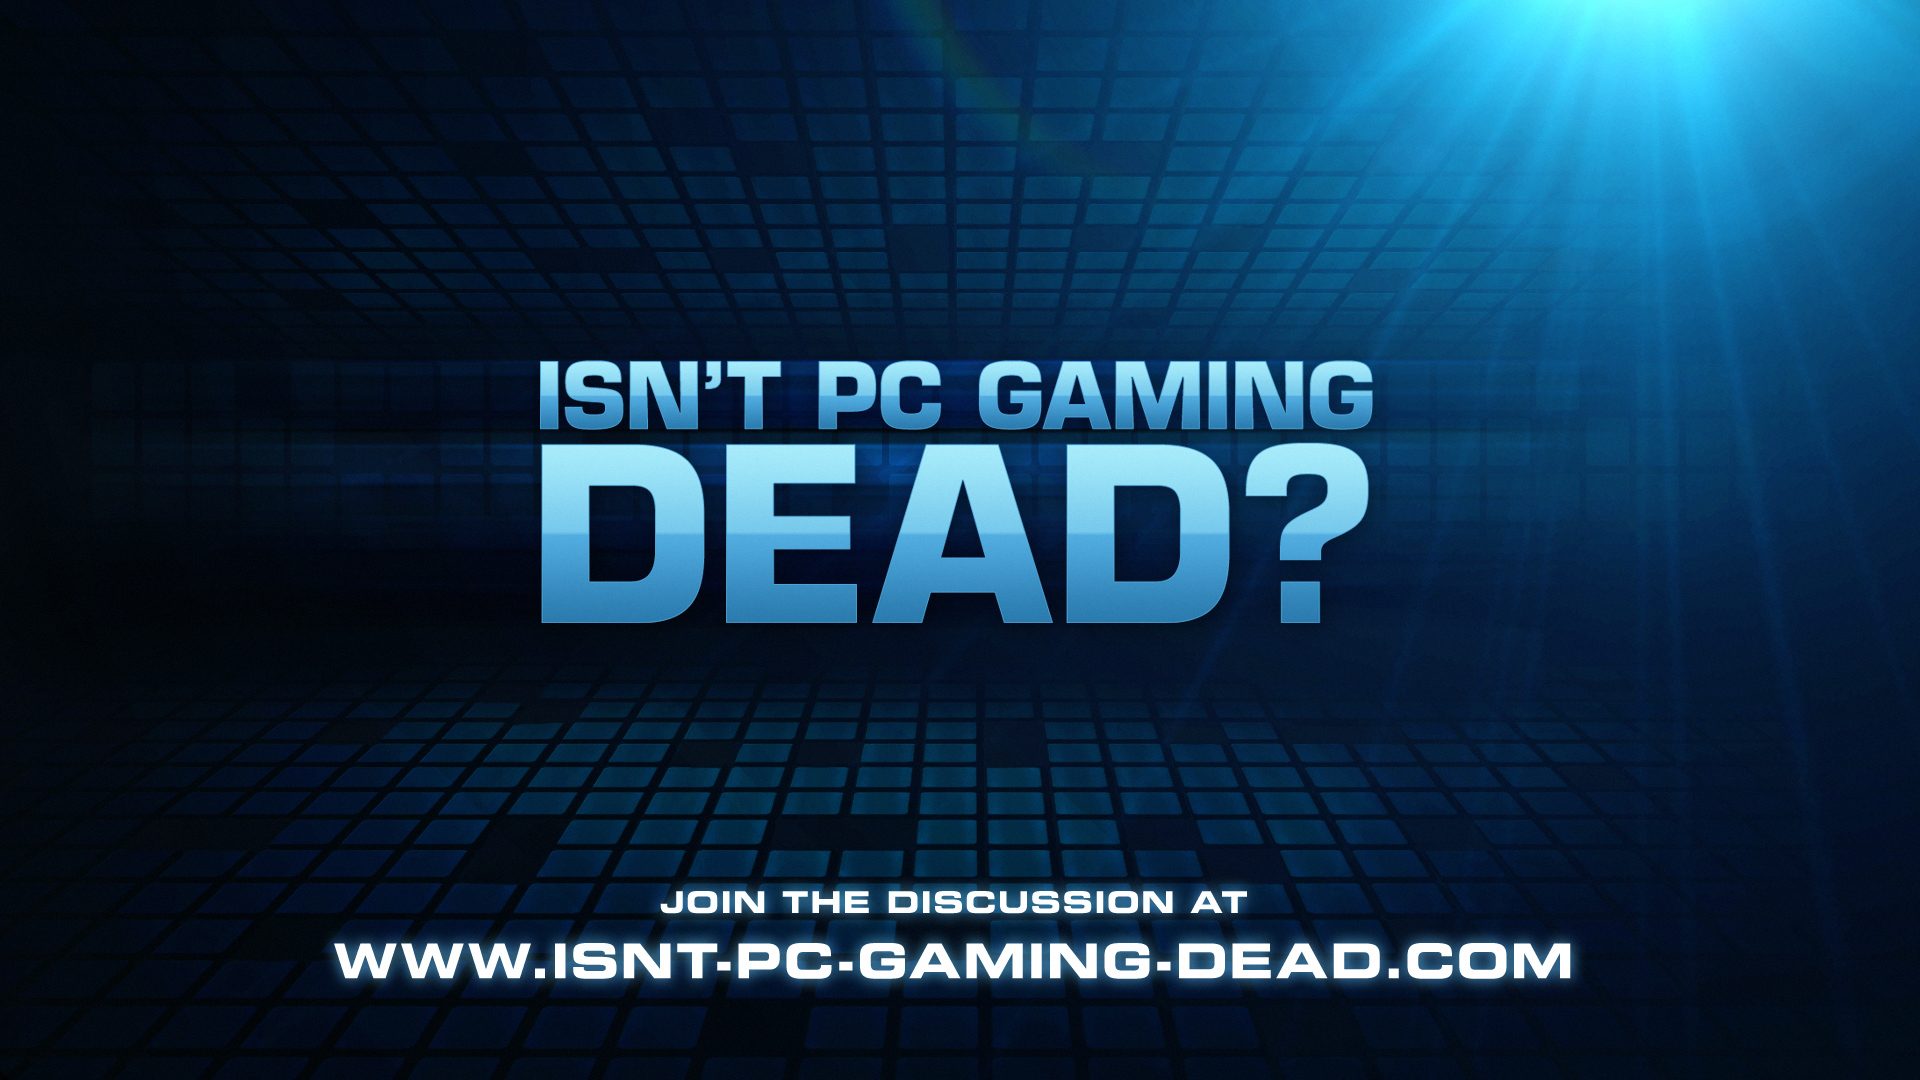 ROCCAT-Asks_ISNT-PC-GAMING-DEAD